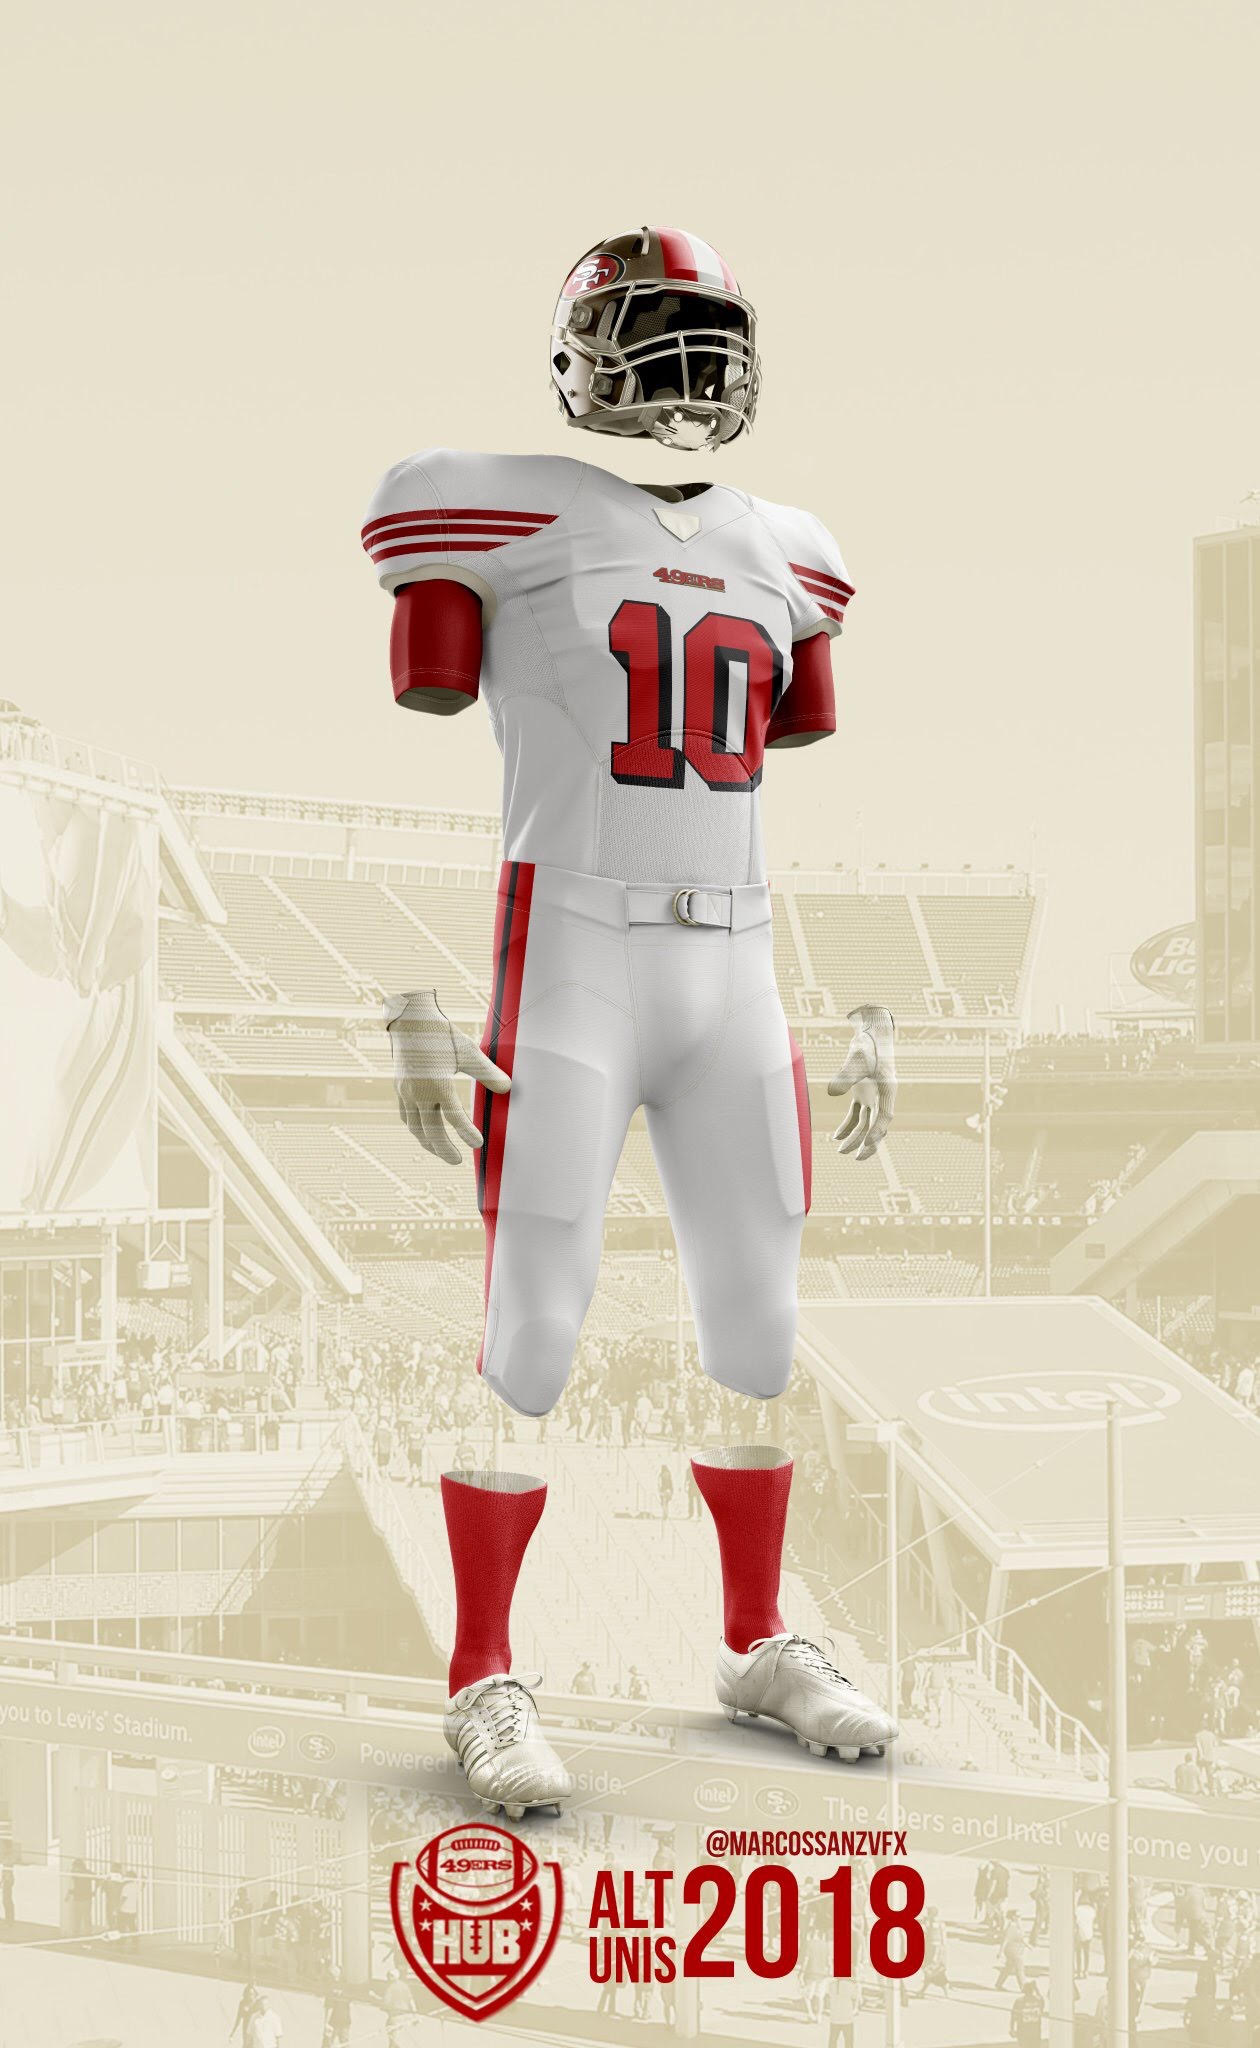 info for 3e419 4d1ee Potential Look at New 49ers Uniforms